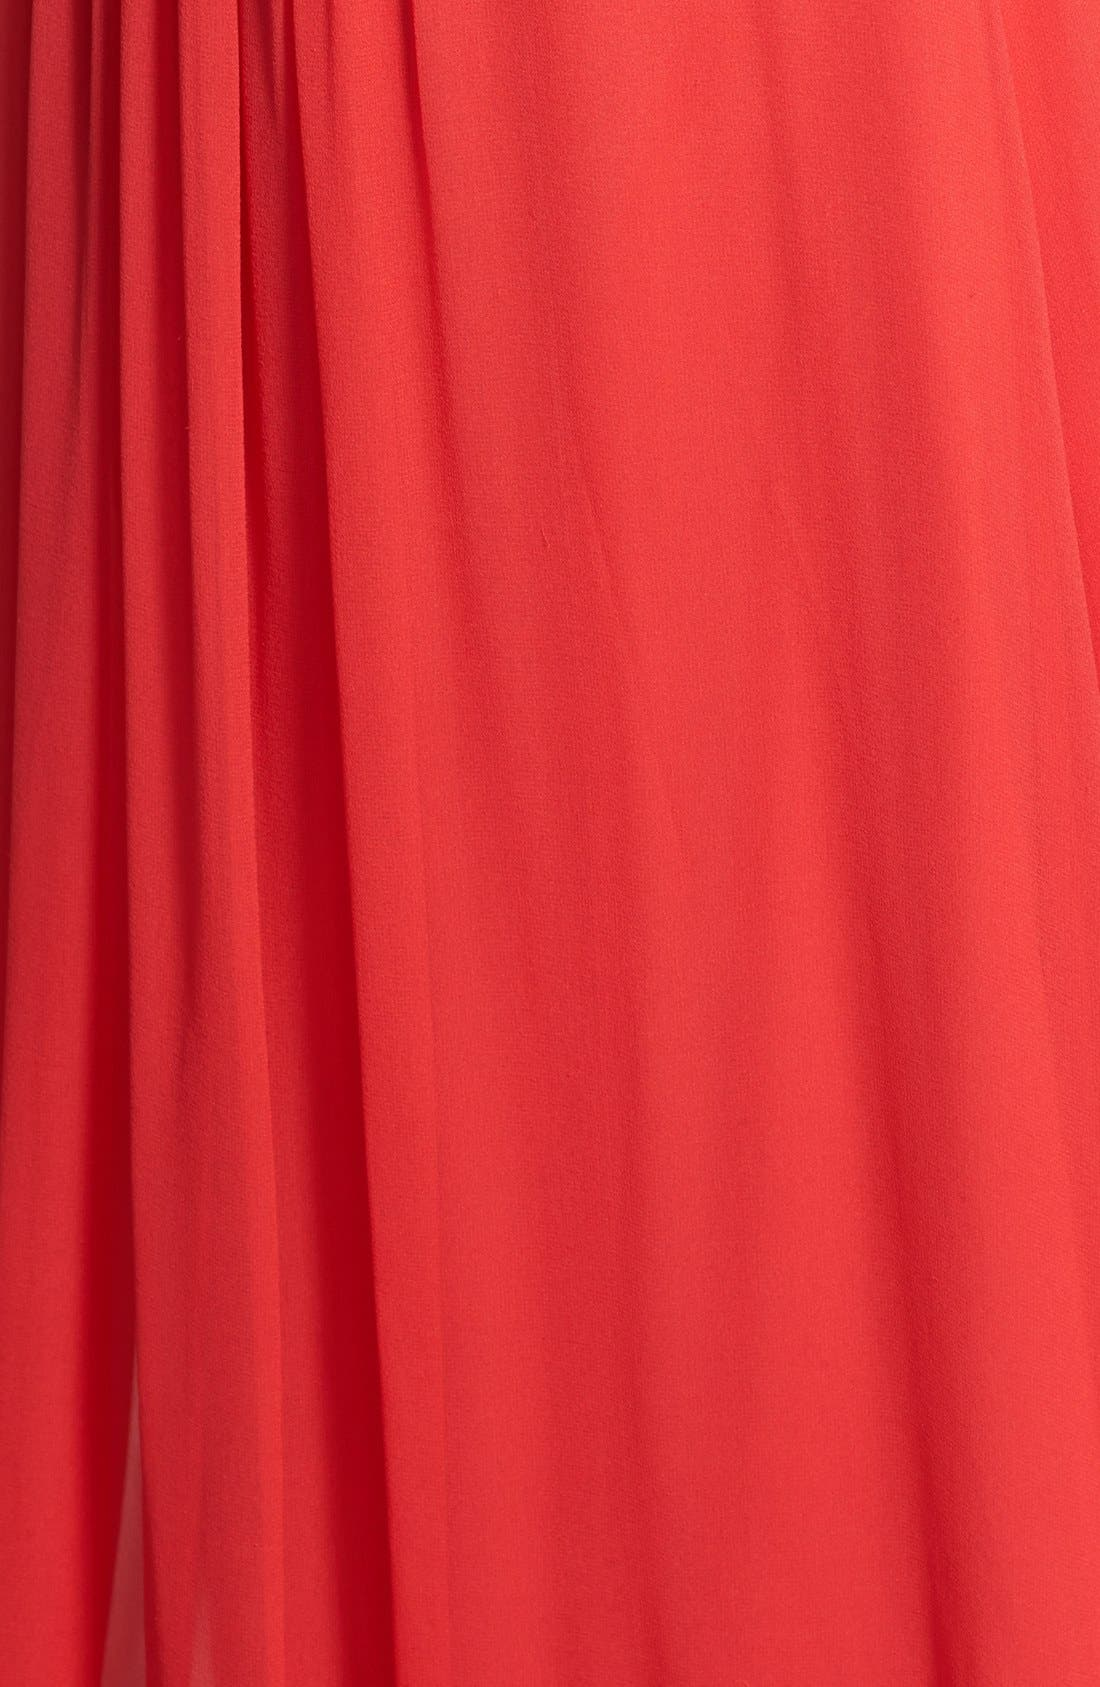 Strapless Chiffon Gown,                             Alternate thumbnail 2, color,                             841